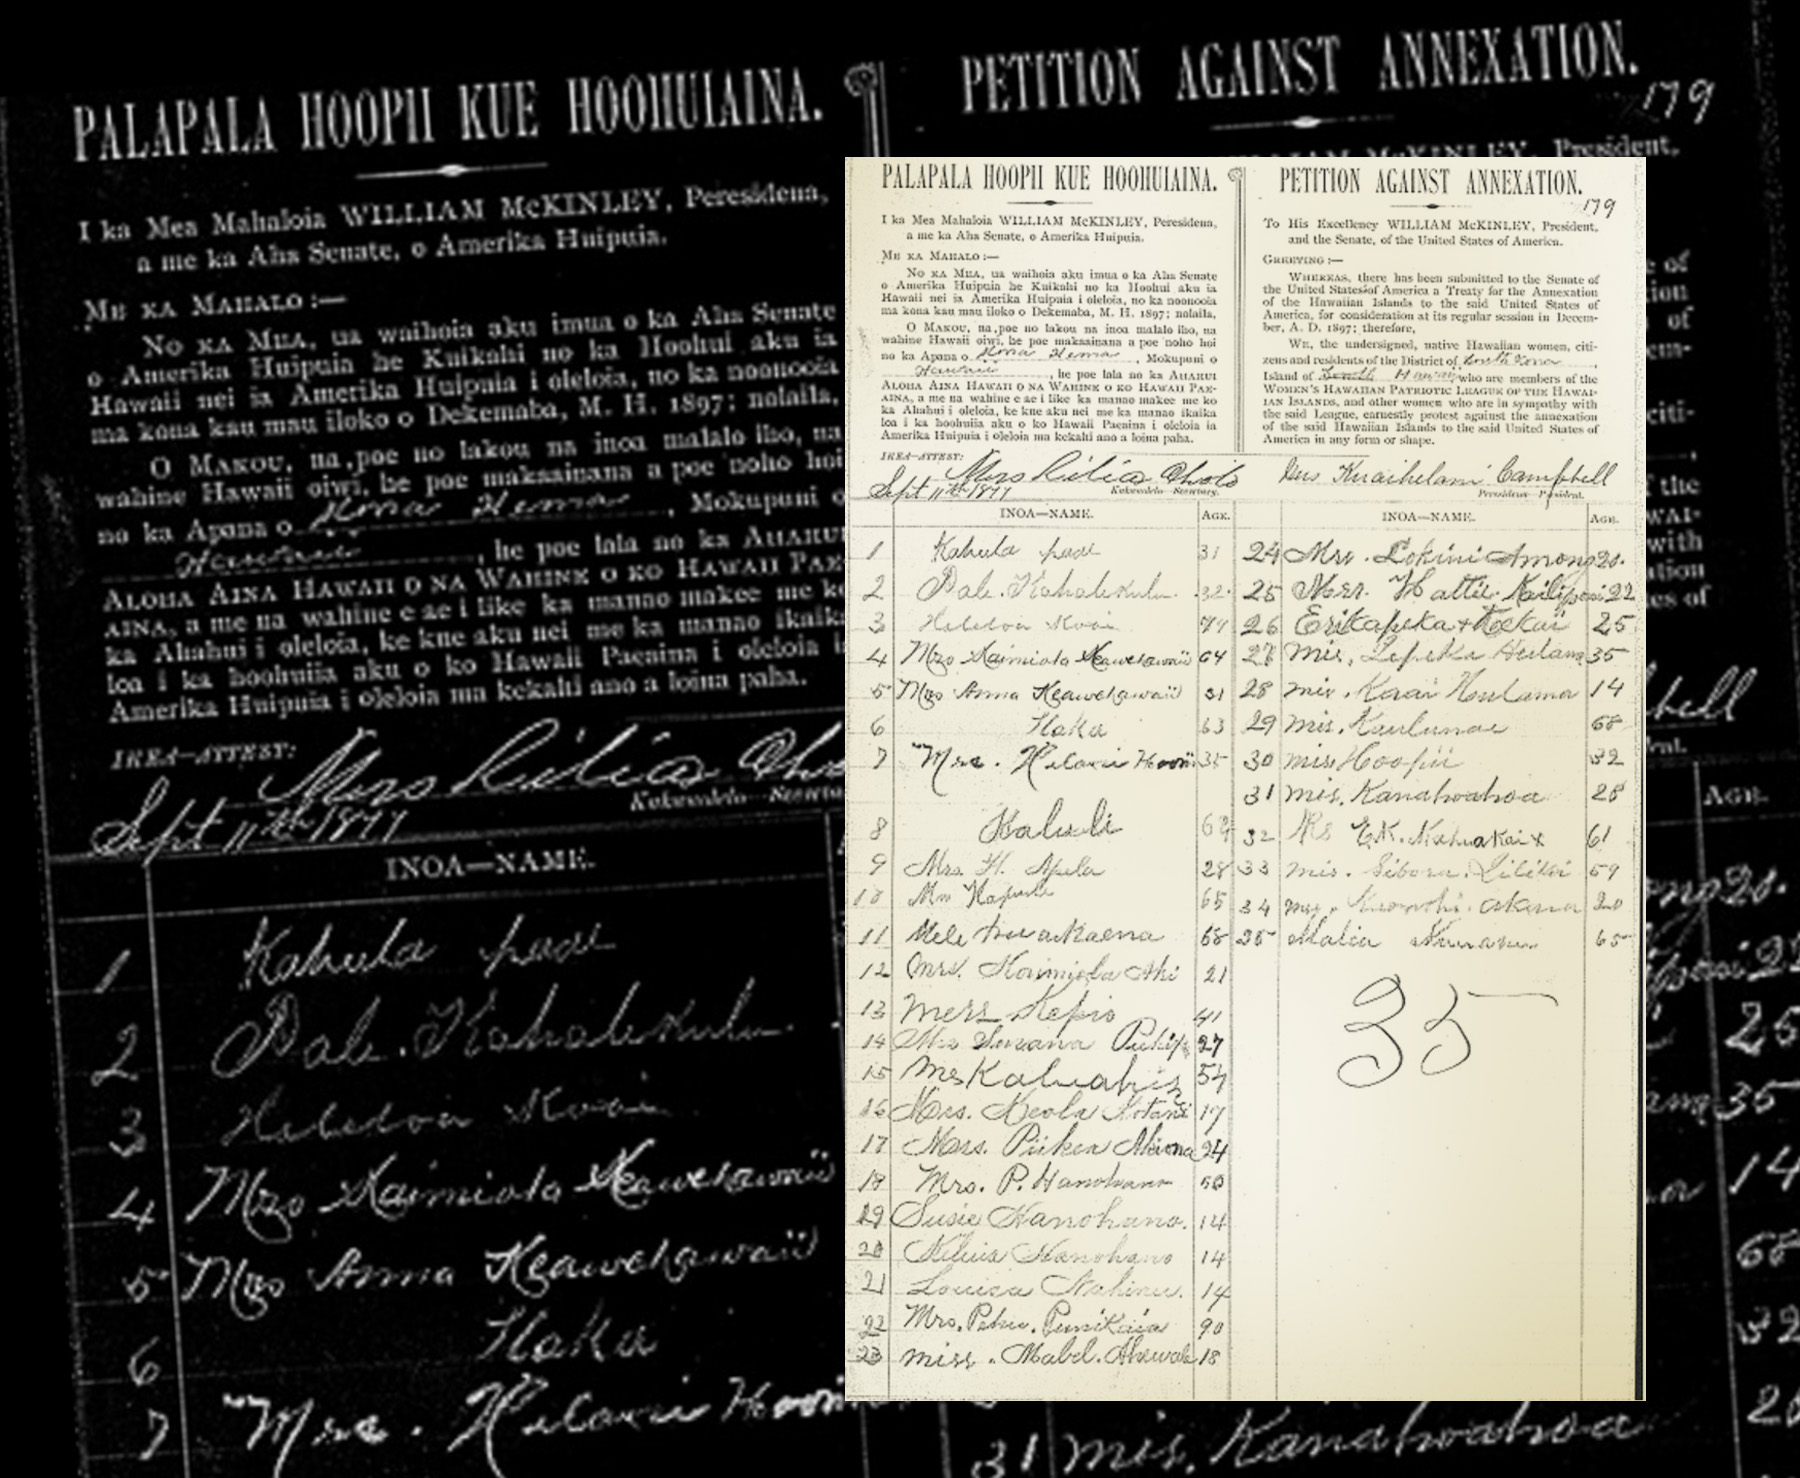 [Kūʻē petitions] 1897 Hawaiʻi petition against annexation.